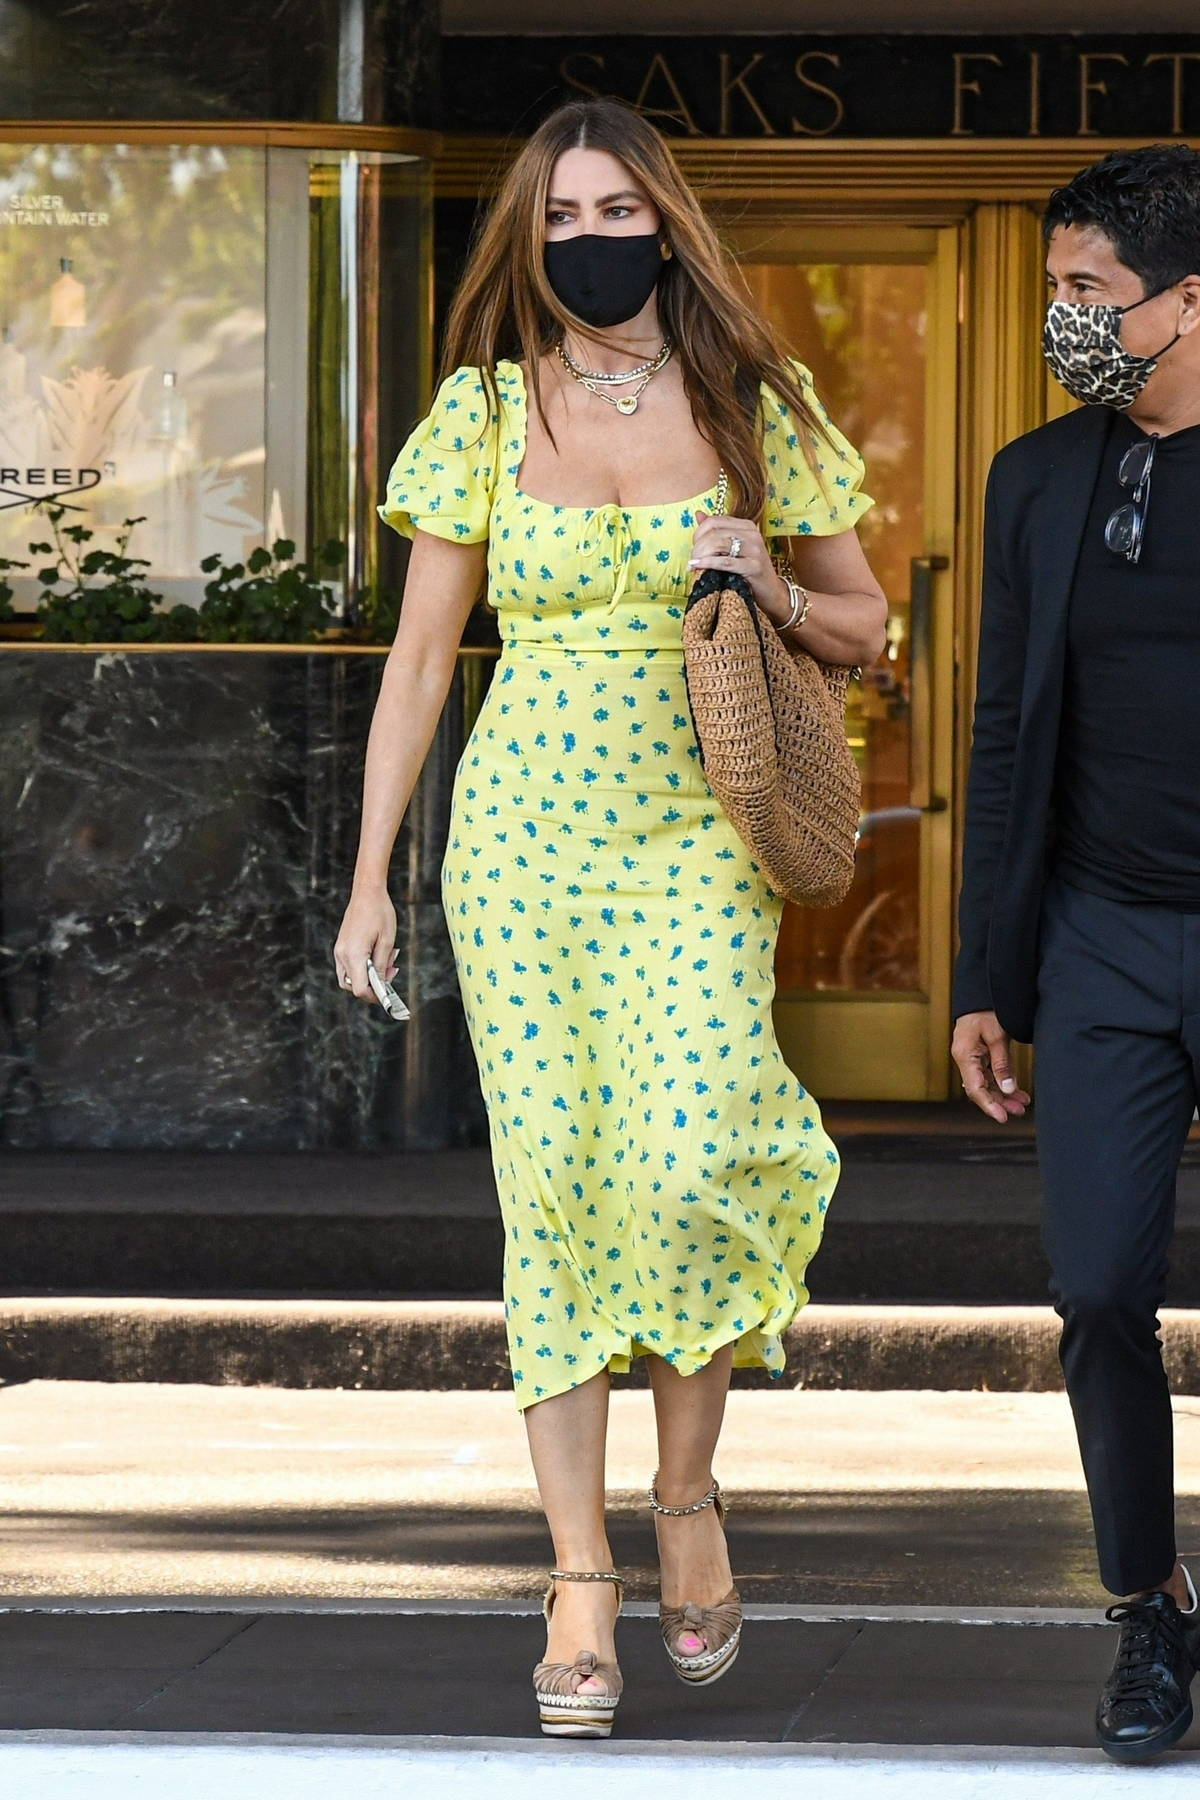 Sofia Vergara looks radiant in a yellow dress during a shopping trip to the Saks Fifth Avenue in Beverly Hills, California